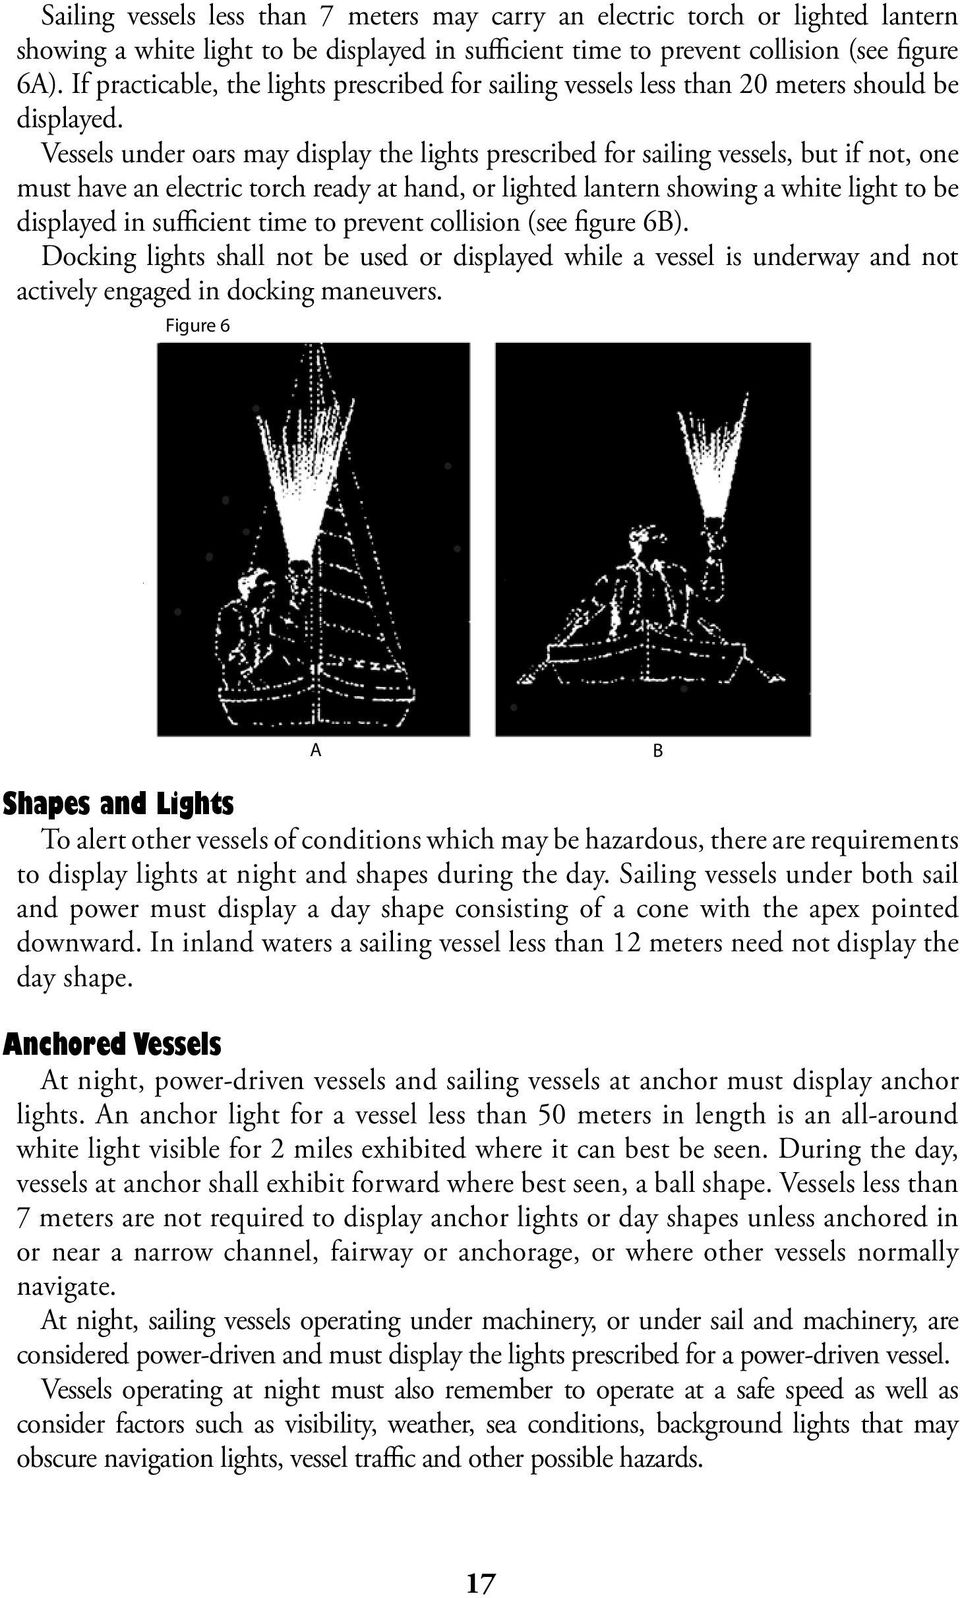 Vessels under oars may display the lights prescribed for sailing vessels, but if not, one must have an electric torch ready at hand, or lighted lantern showing a white light to be displayed in